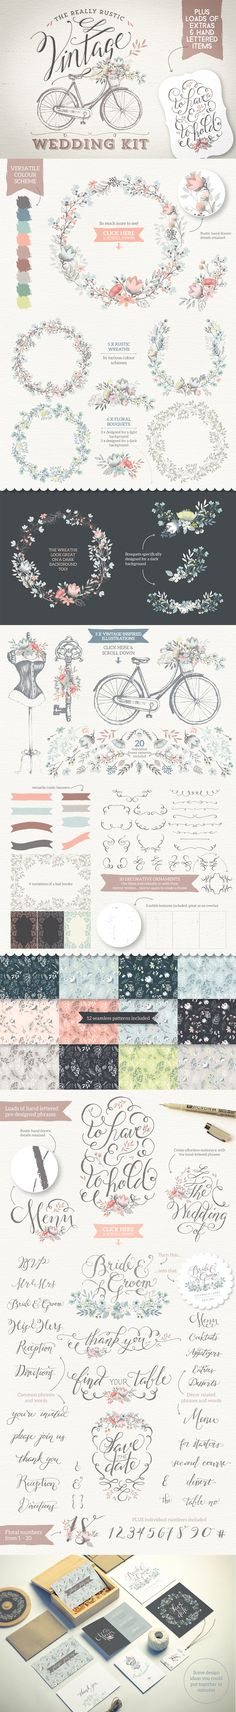 Really Rustic Vintage Wedding Kit by Lisa Glanz | The Comprehensive, Creative Vectors Bundle Mar 2015 from Design Cuts